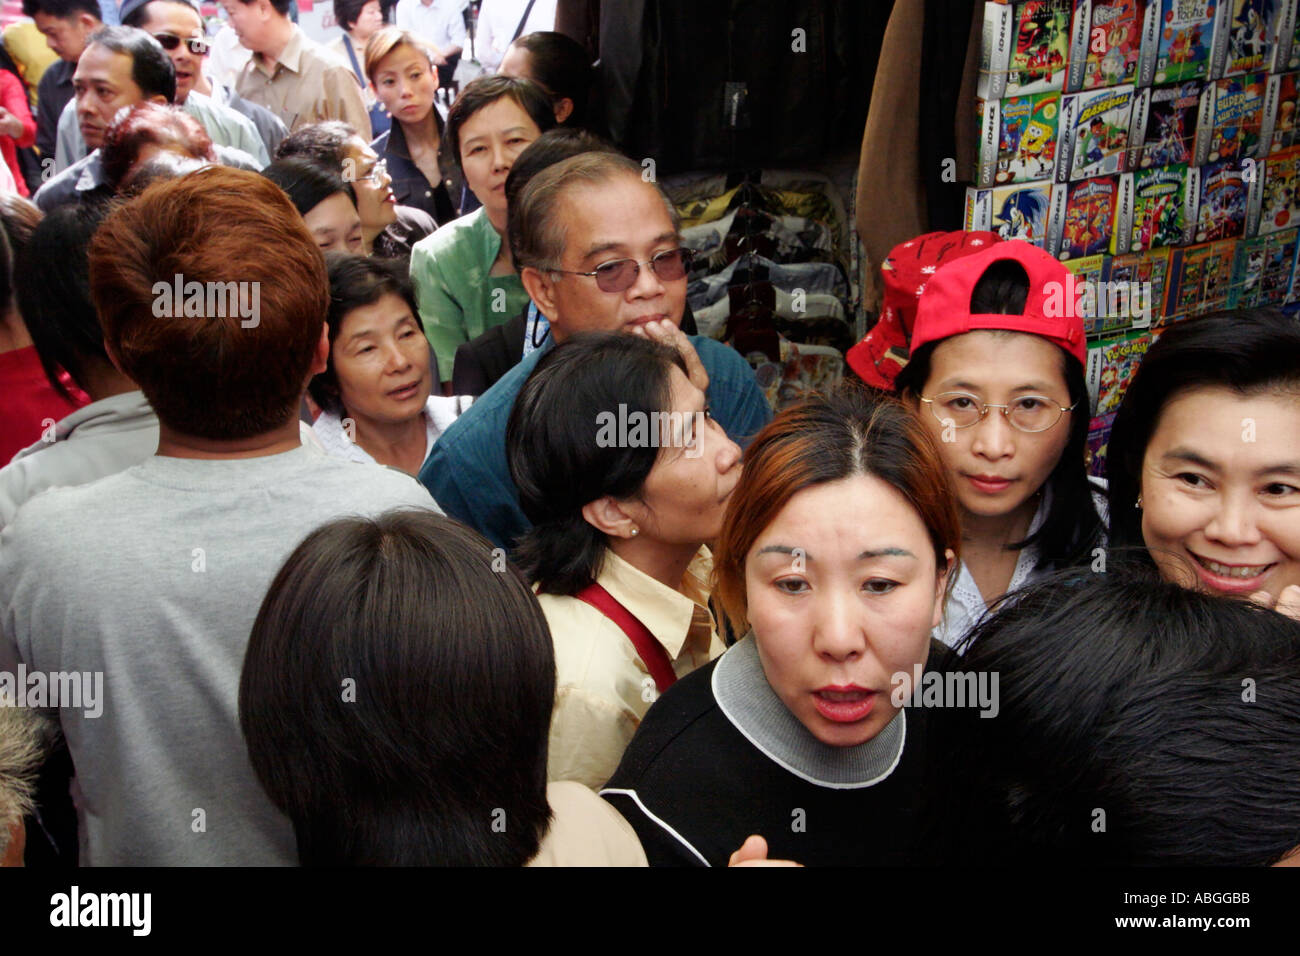 An open air market in Shanghai China is crowded with shoppers  - Stock Image